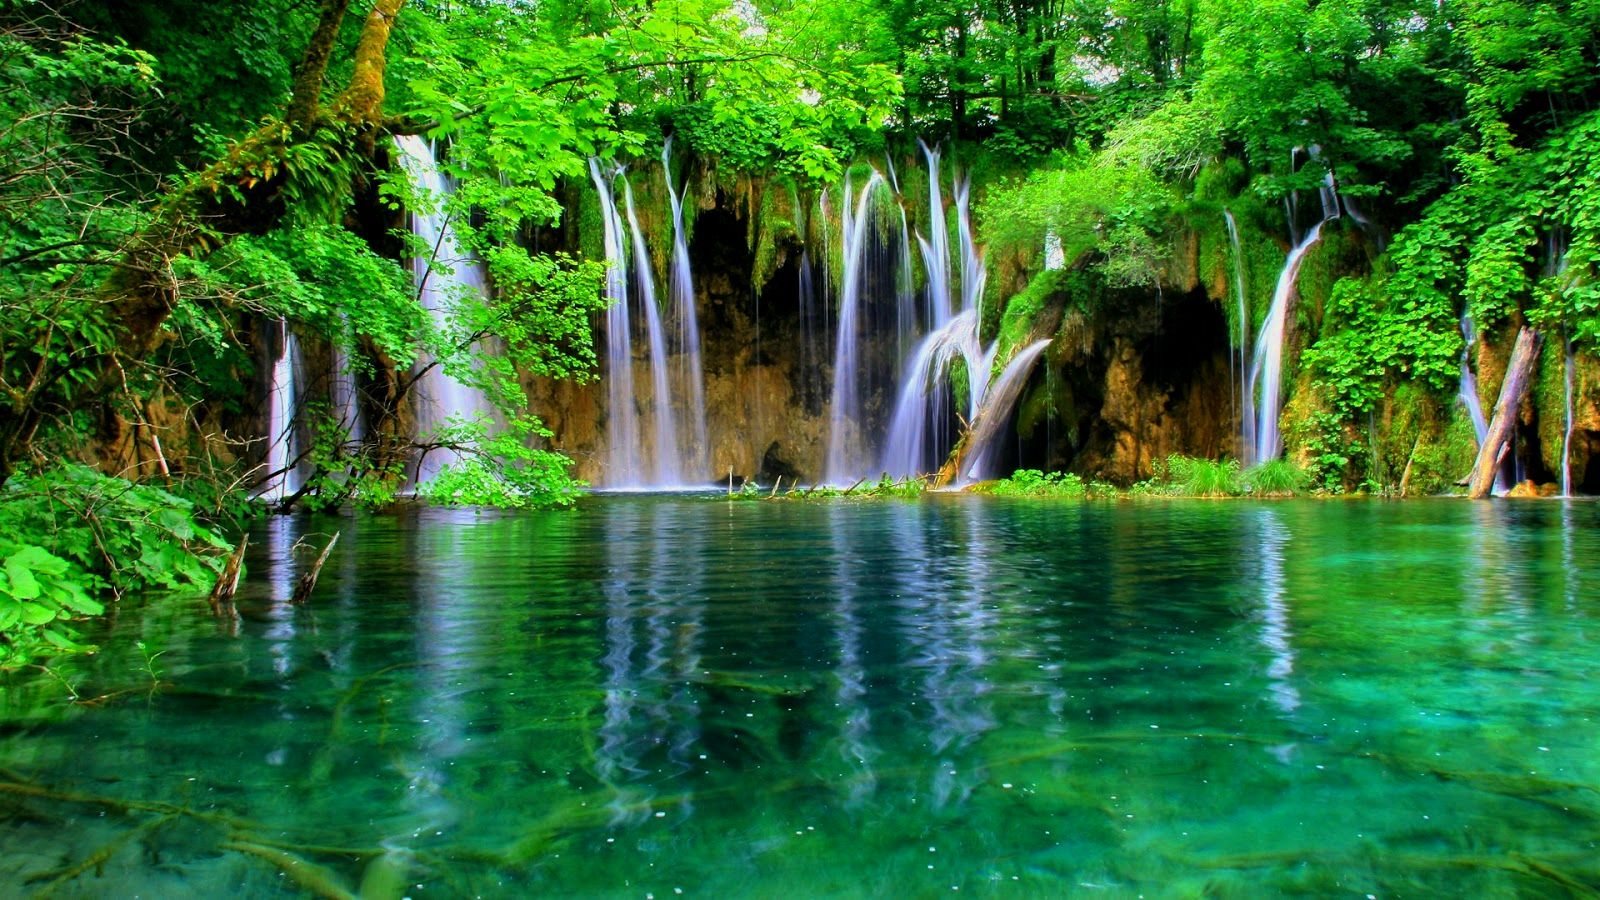 Waterfalls Hd Wallpapers Blogua Free Ultra Hd 3840x2160 High Definition Wallpaper Beautiful Vacation Spots Waterfall Wallpaper Plitvice Lakes National Park